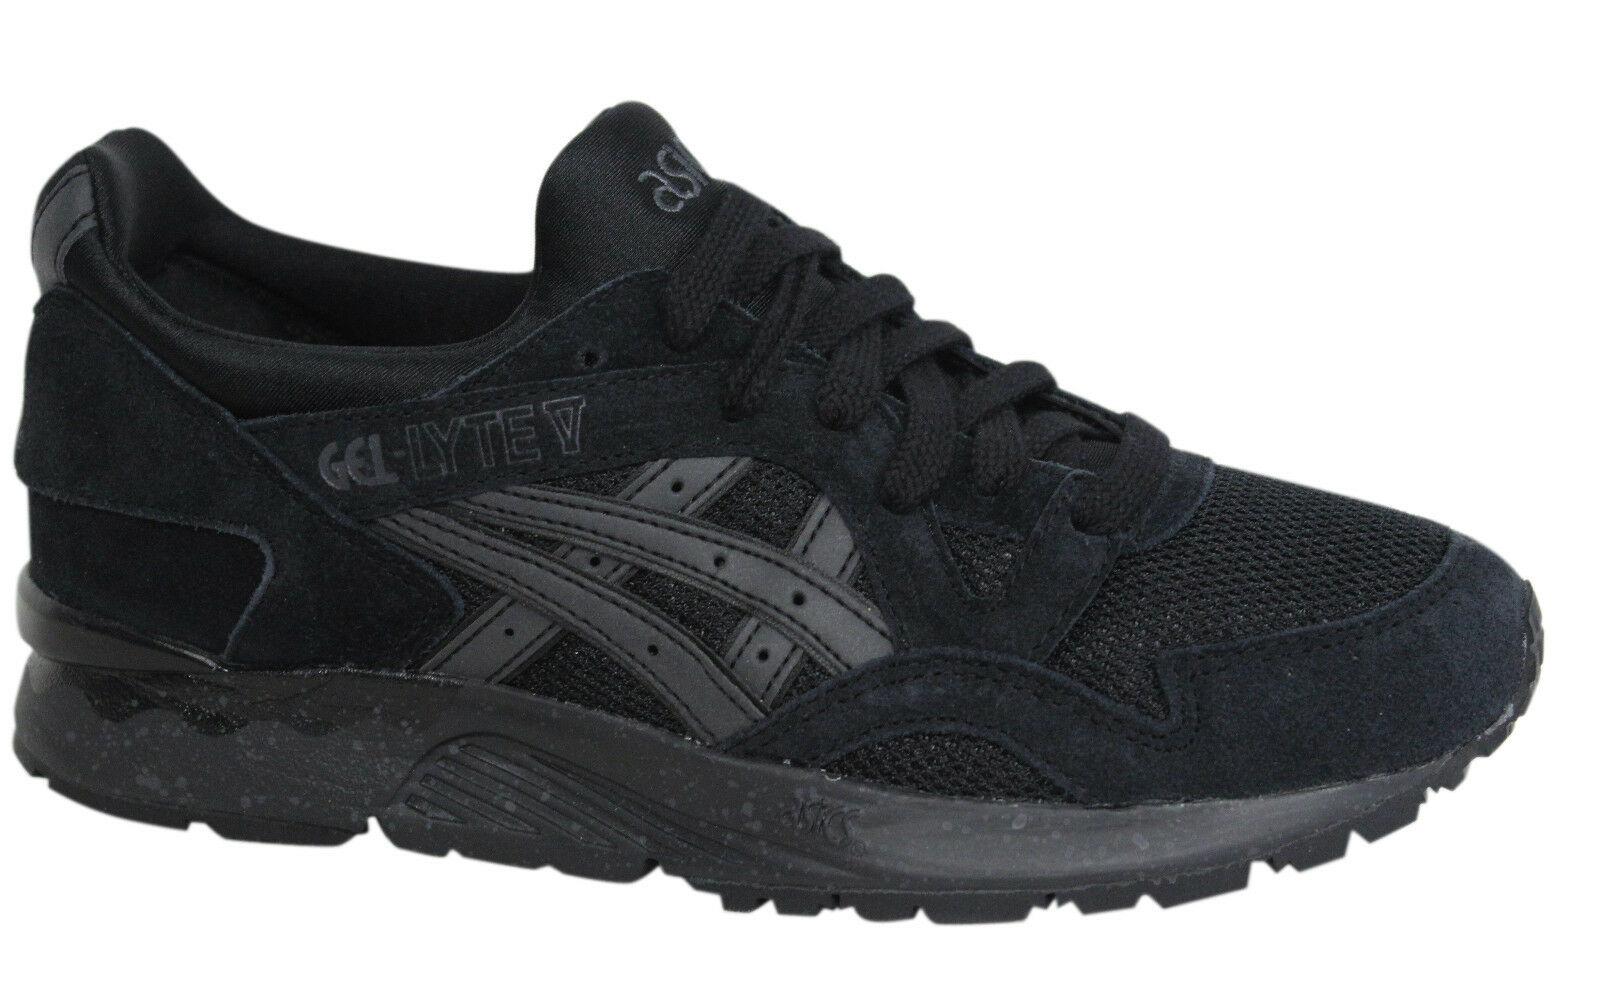 Asics Gel-Lyte V Lace Up Black Mens Leather Trainers H5R2N 9090 M9